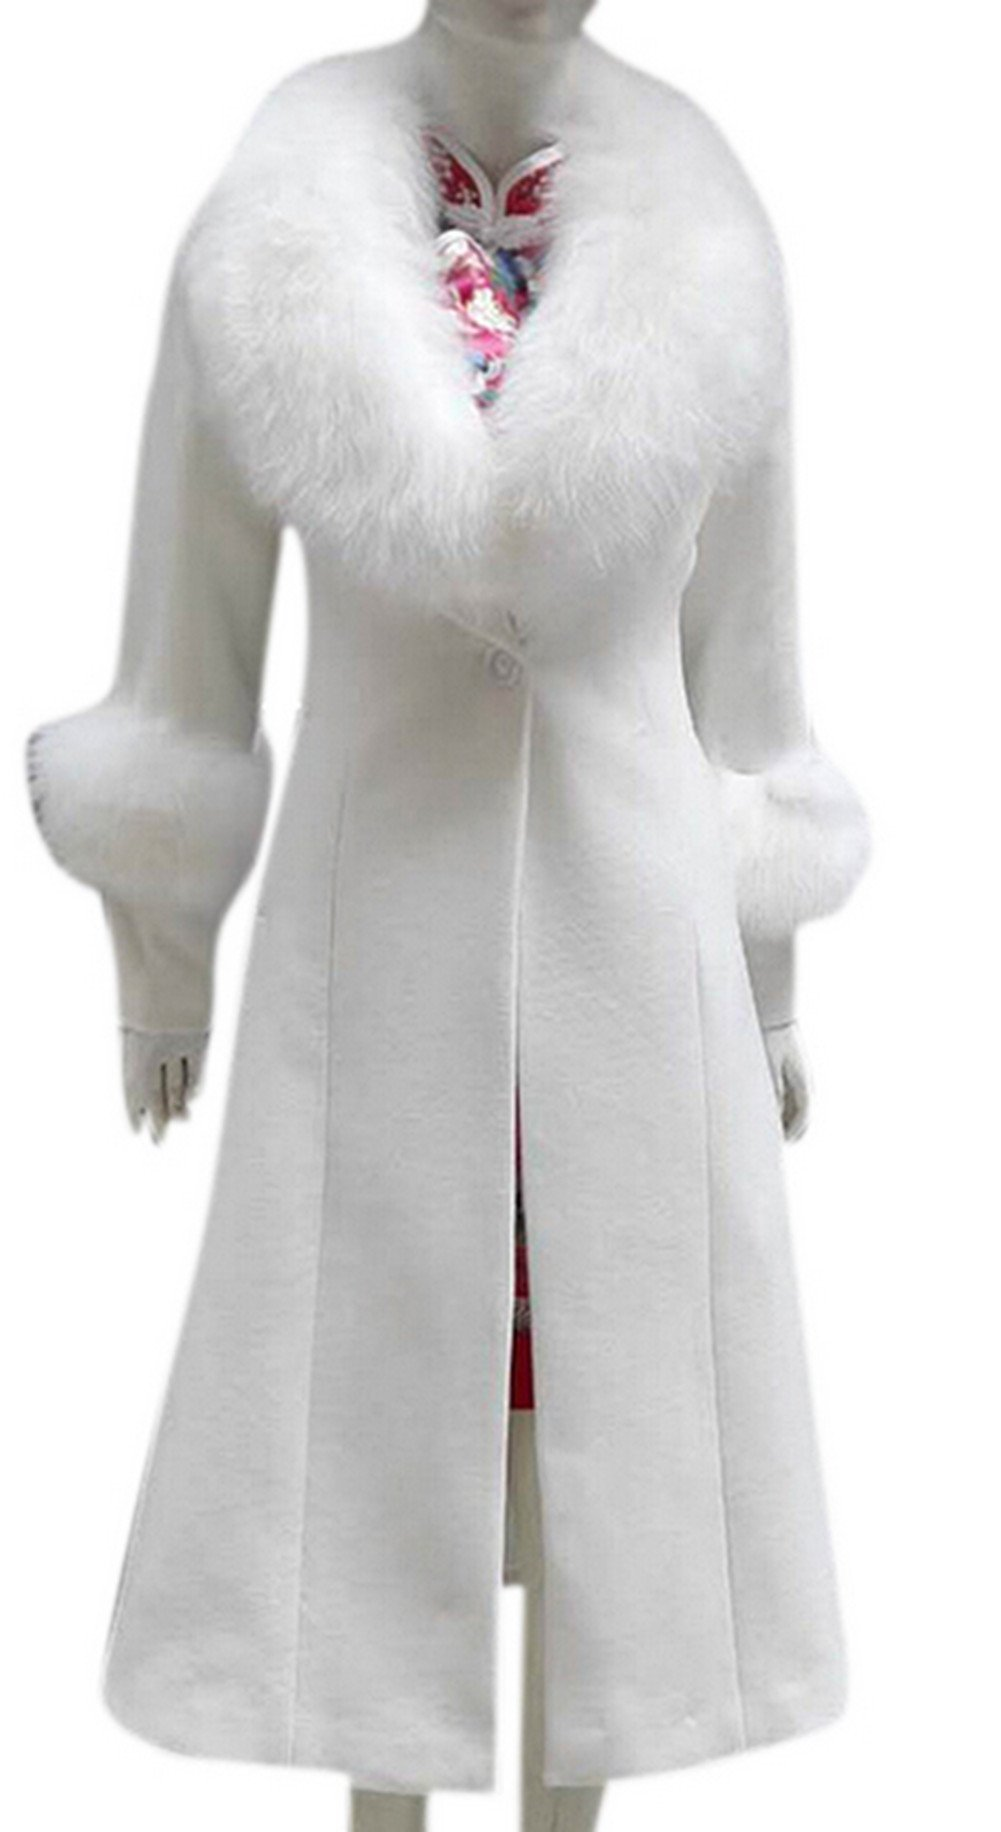 AZIZY Women's Wool Long Parka Fur Collar Cocktail Slim Casual Trench Coat White M by AZIZY